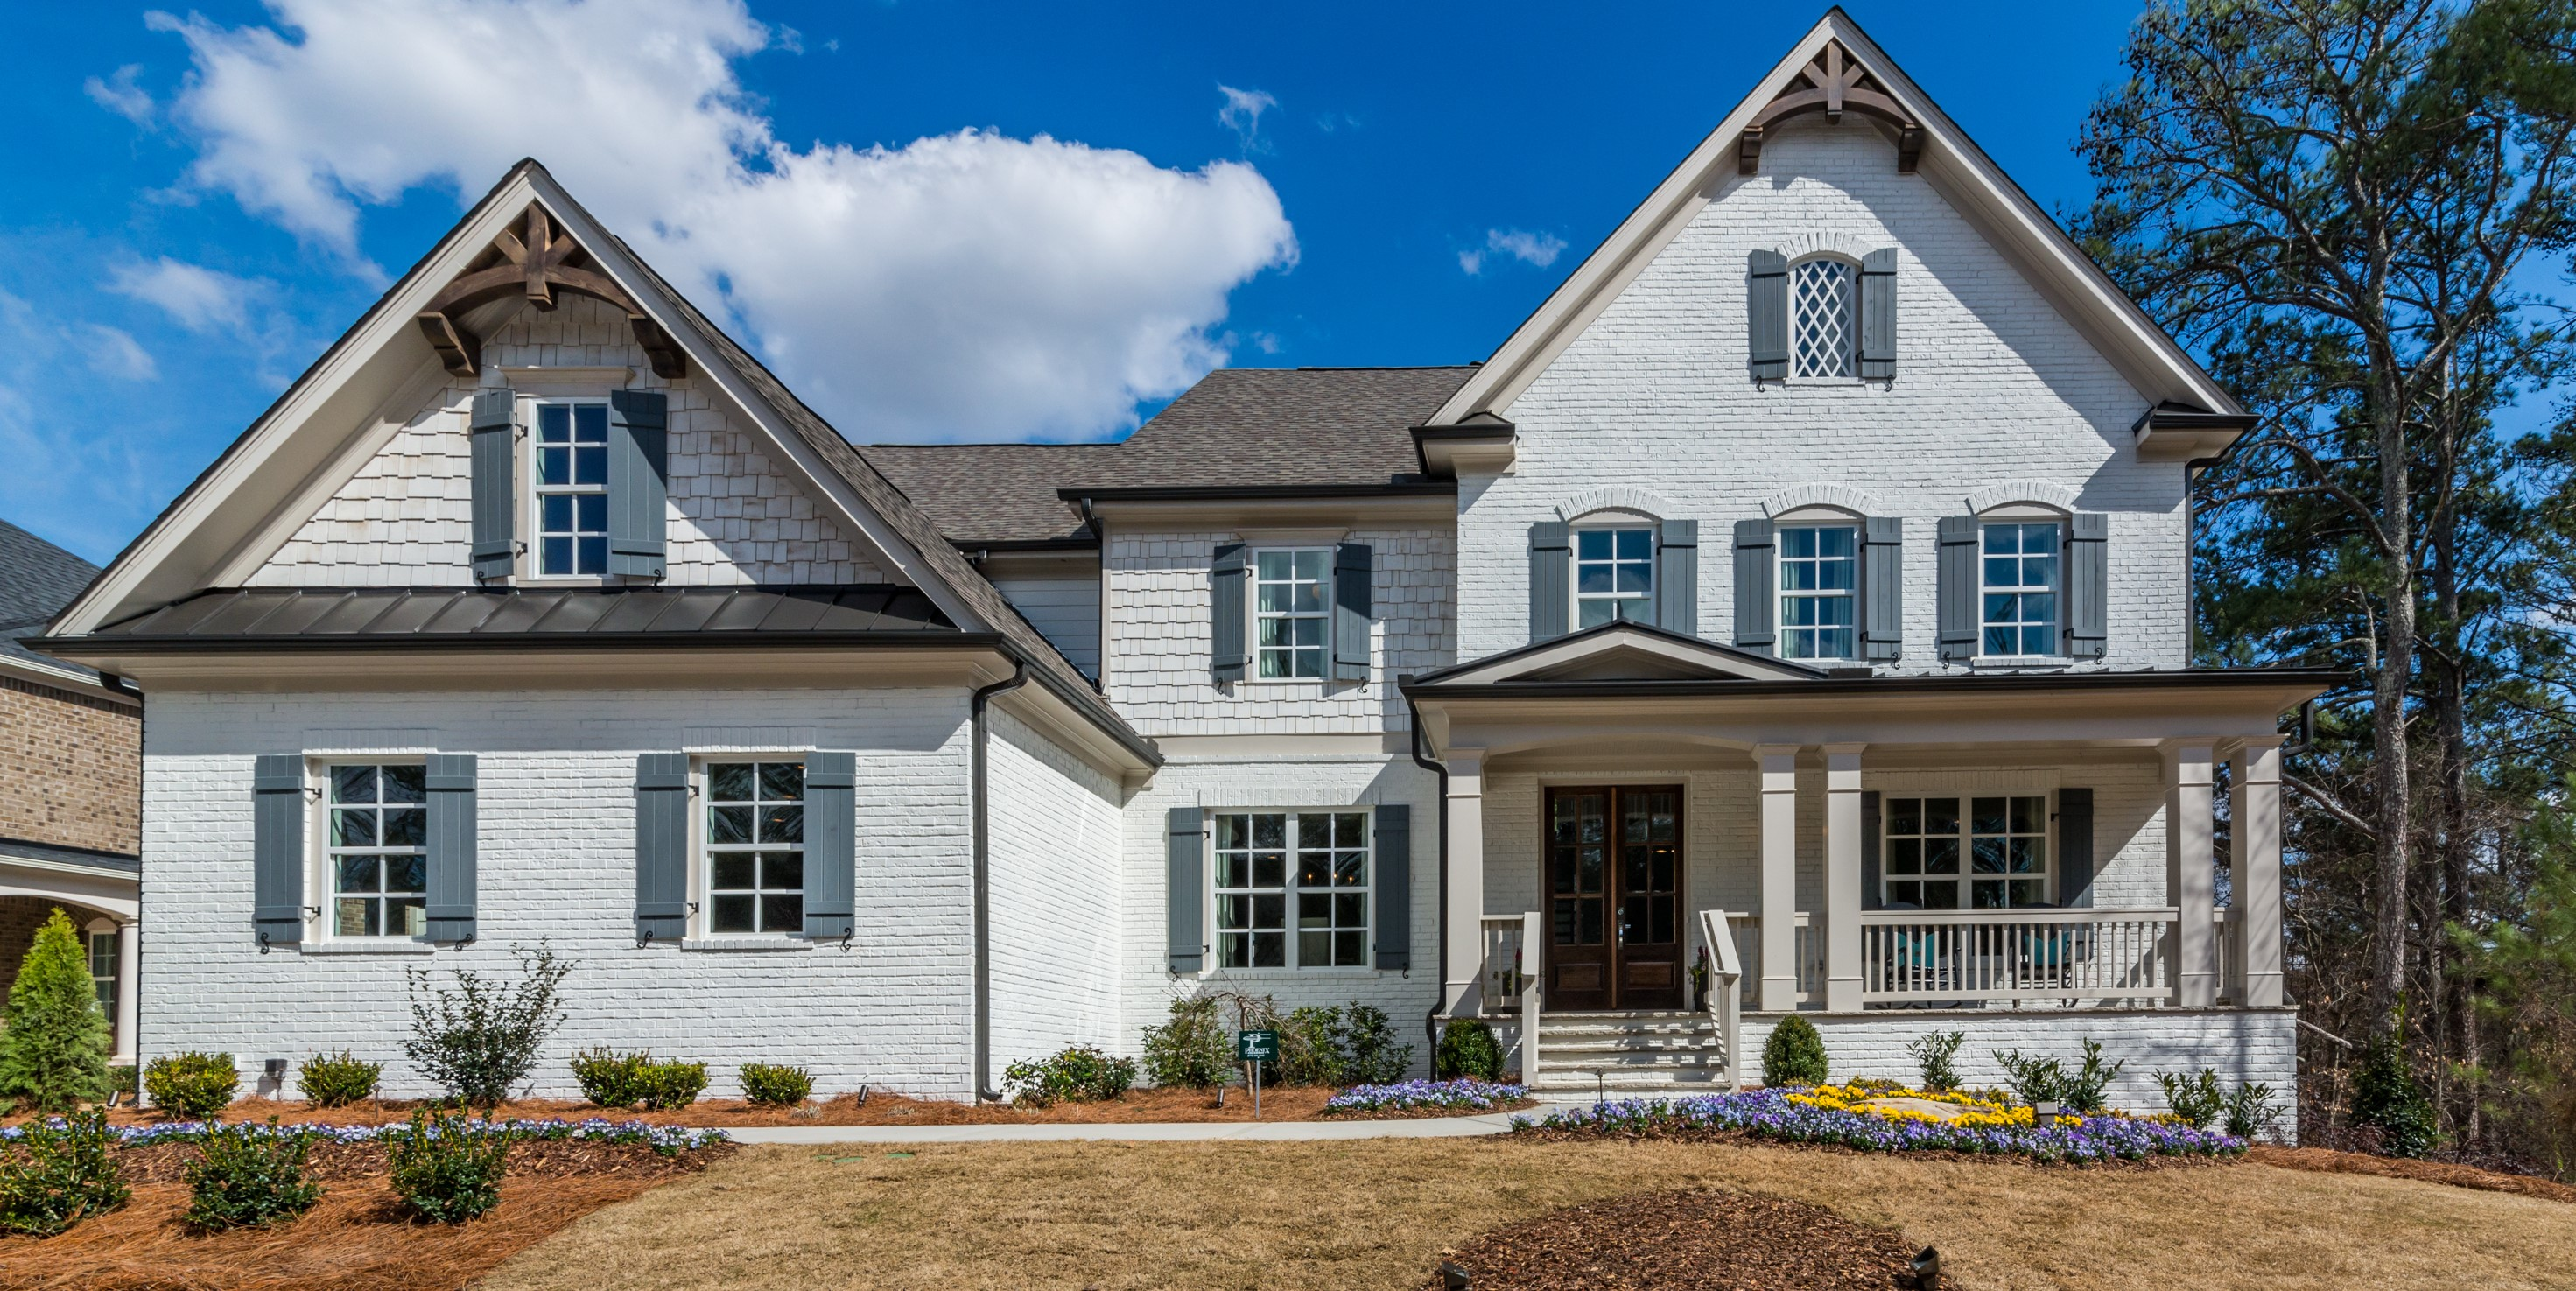 Stonecrest homes homes built for years to come for Custom home builders georgia